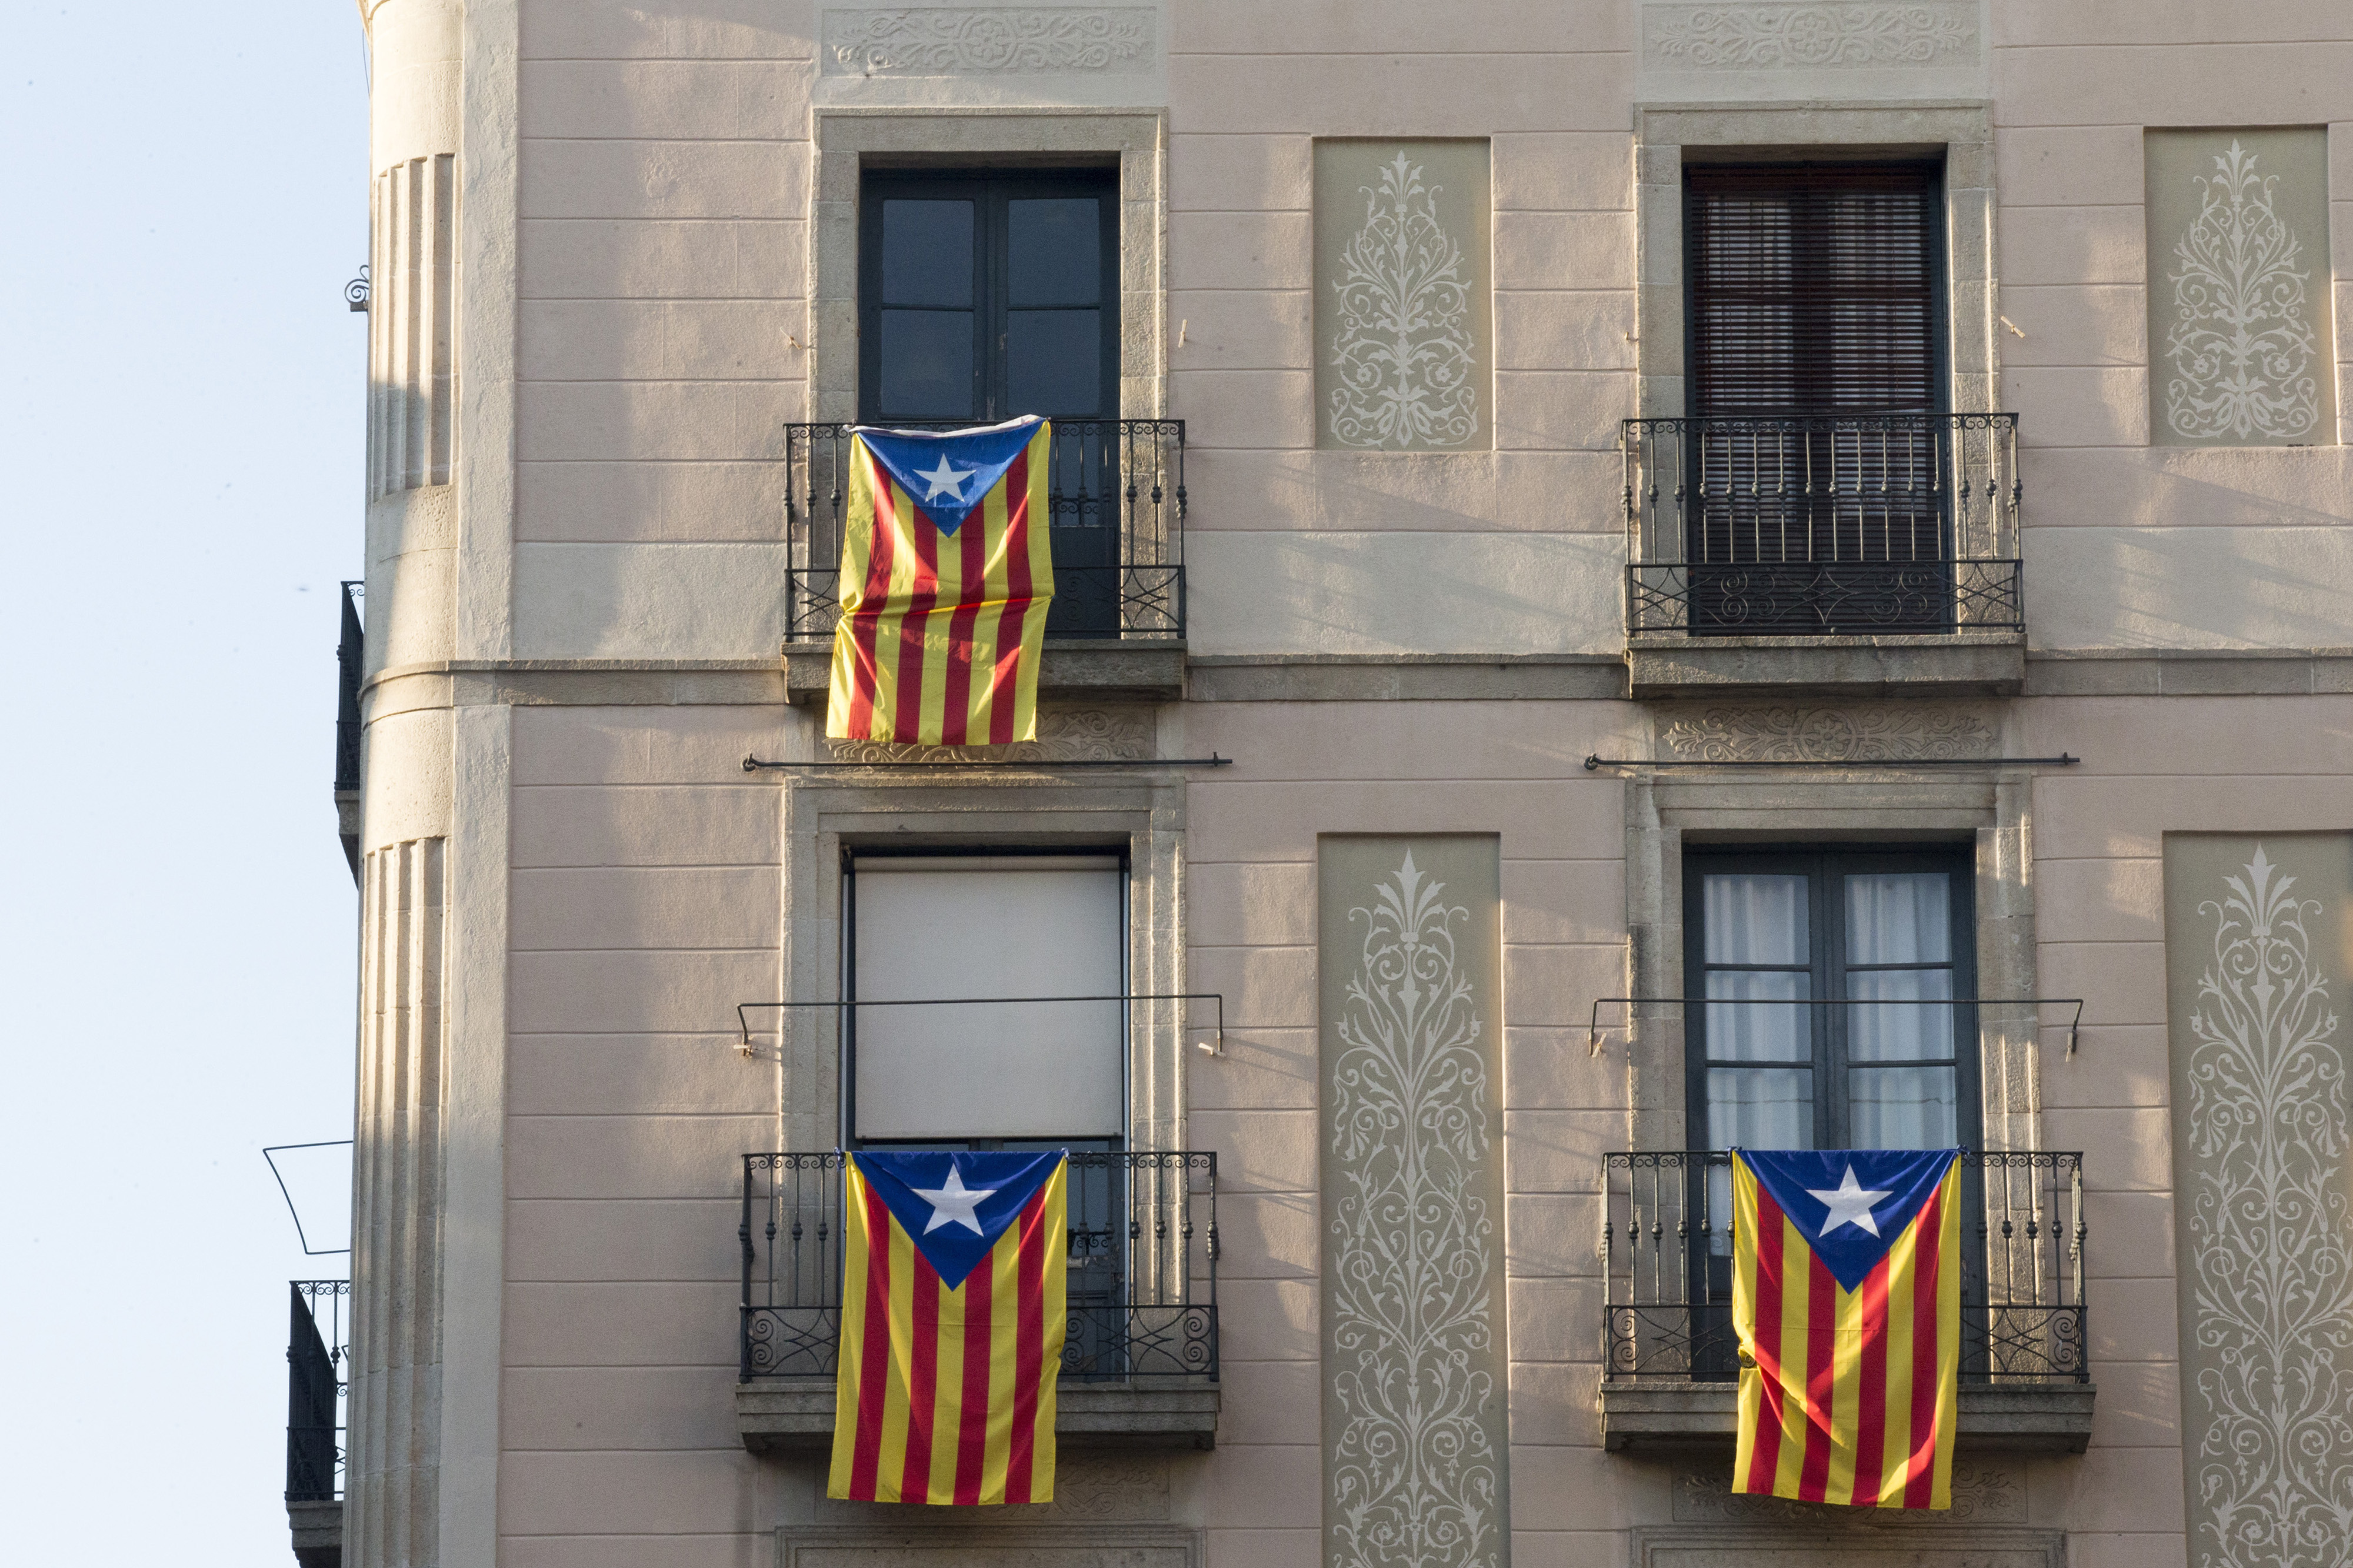 Pro-independent Catalonia flags hang from the balcony of a residential home in Barcelona, Spain, Nov. 9, 2015